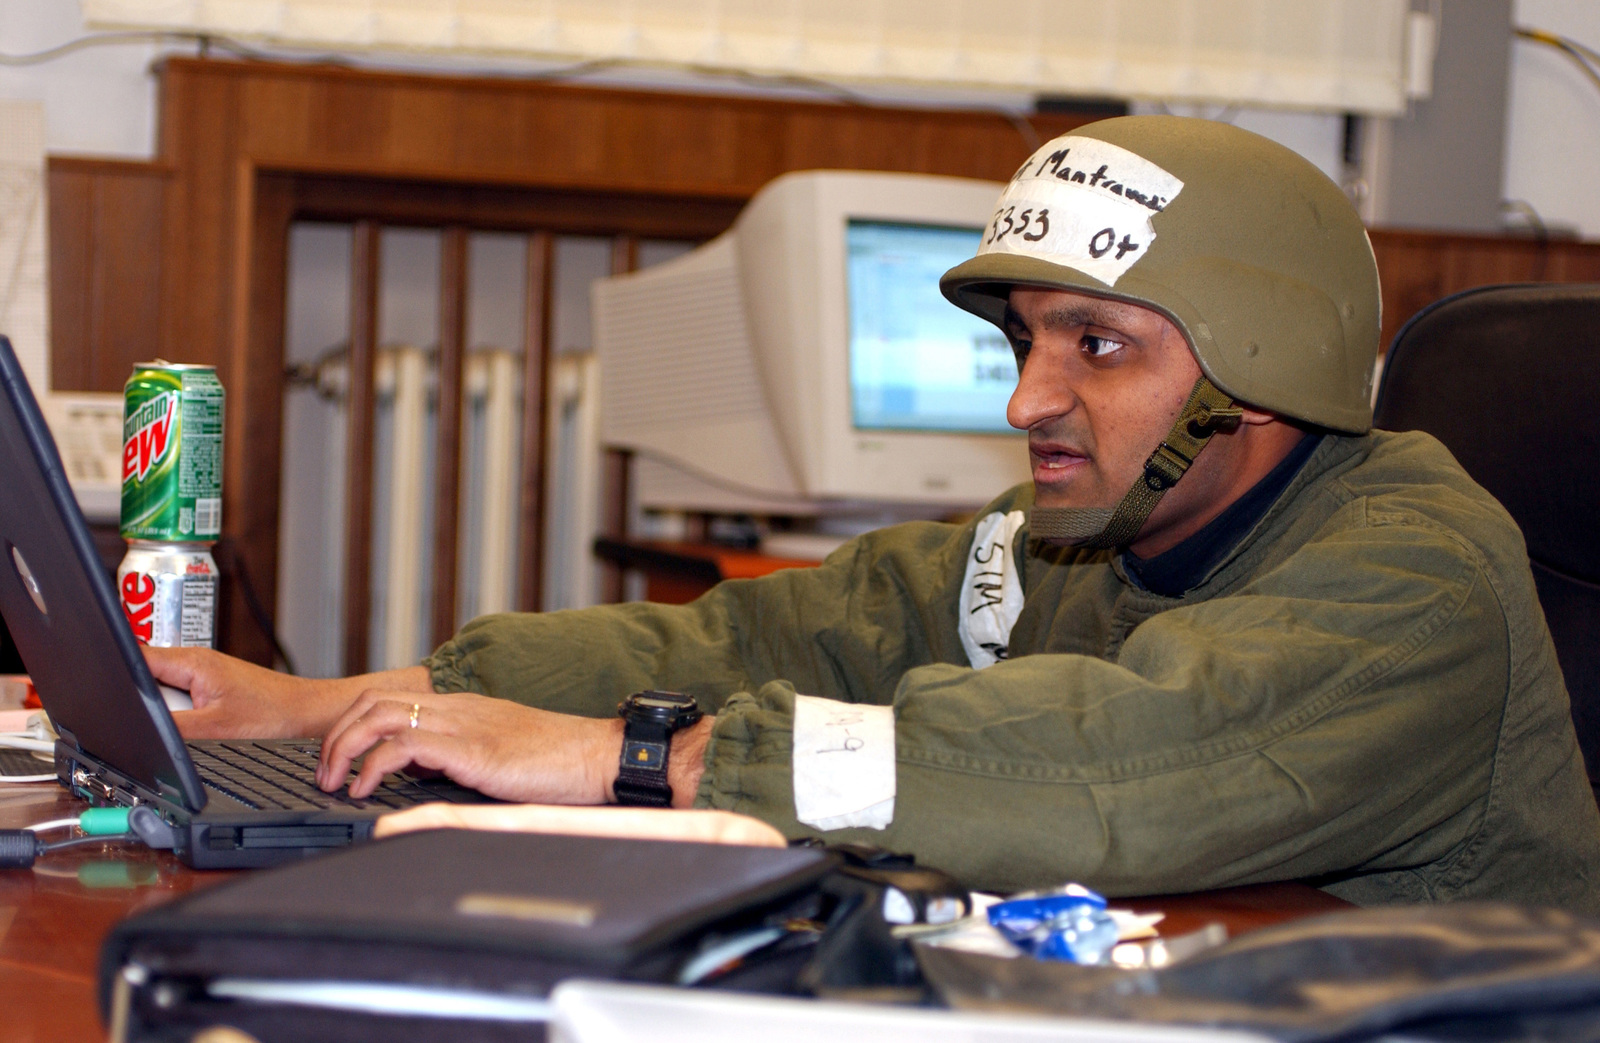 US Air Force (USAF) Captain (CAPT) Srikant Mantravadi, Support Flight Commander, 31st Communications Squadron (CS), inputs night shift information to update the Command and Support STAFF (CSS) during the LOCAL SALTY NATION exercise. The LSN prepares members of the 31st Fighter Wing (FW) for an upcoming Tactical Evaluation